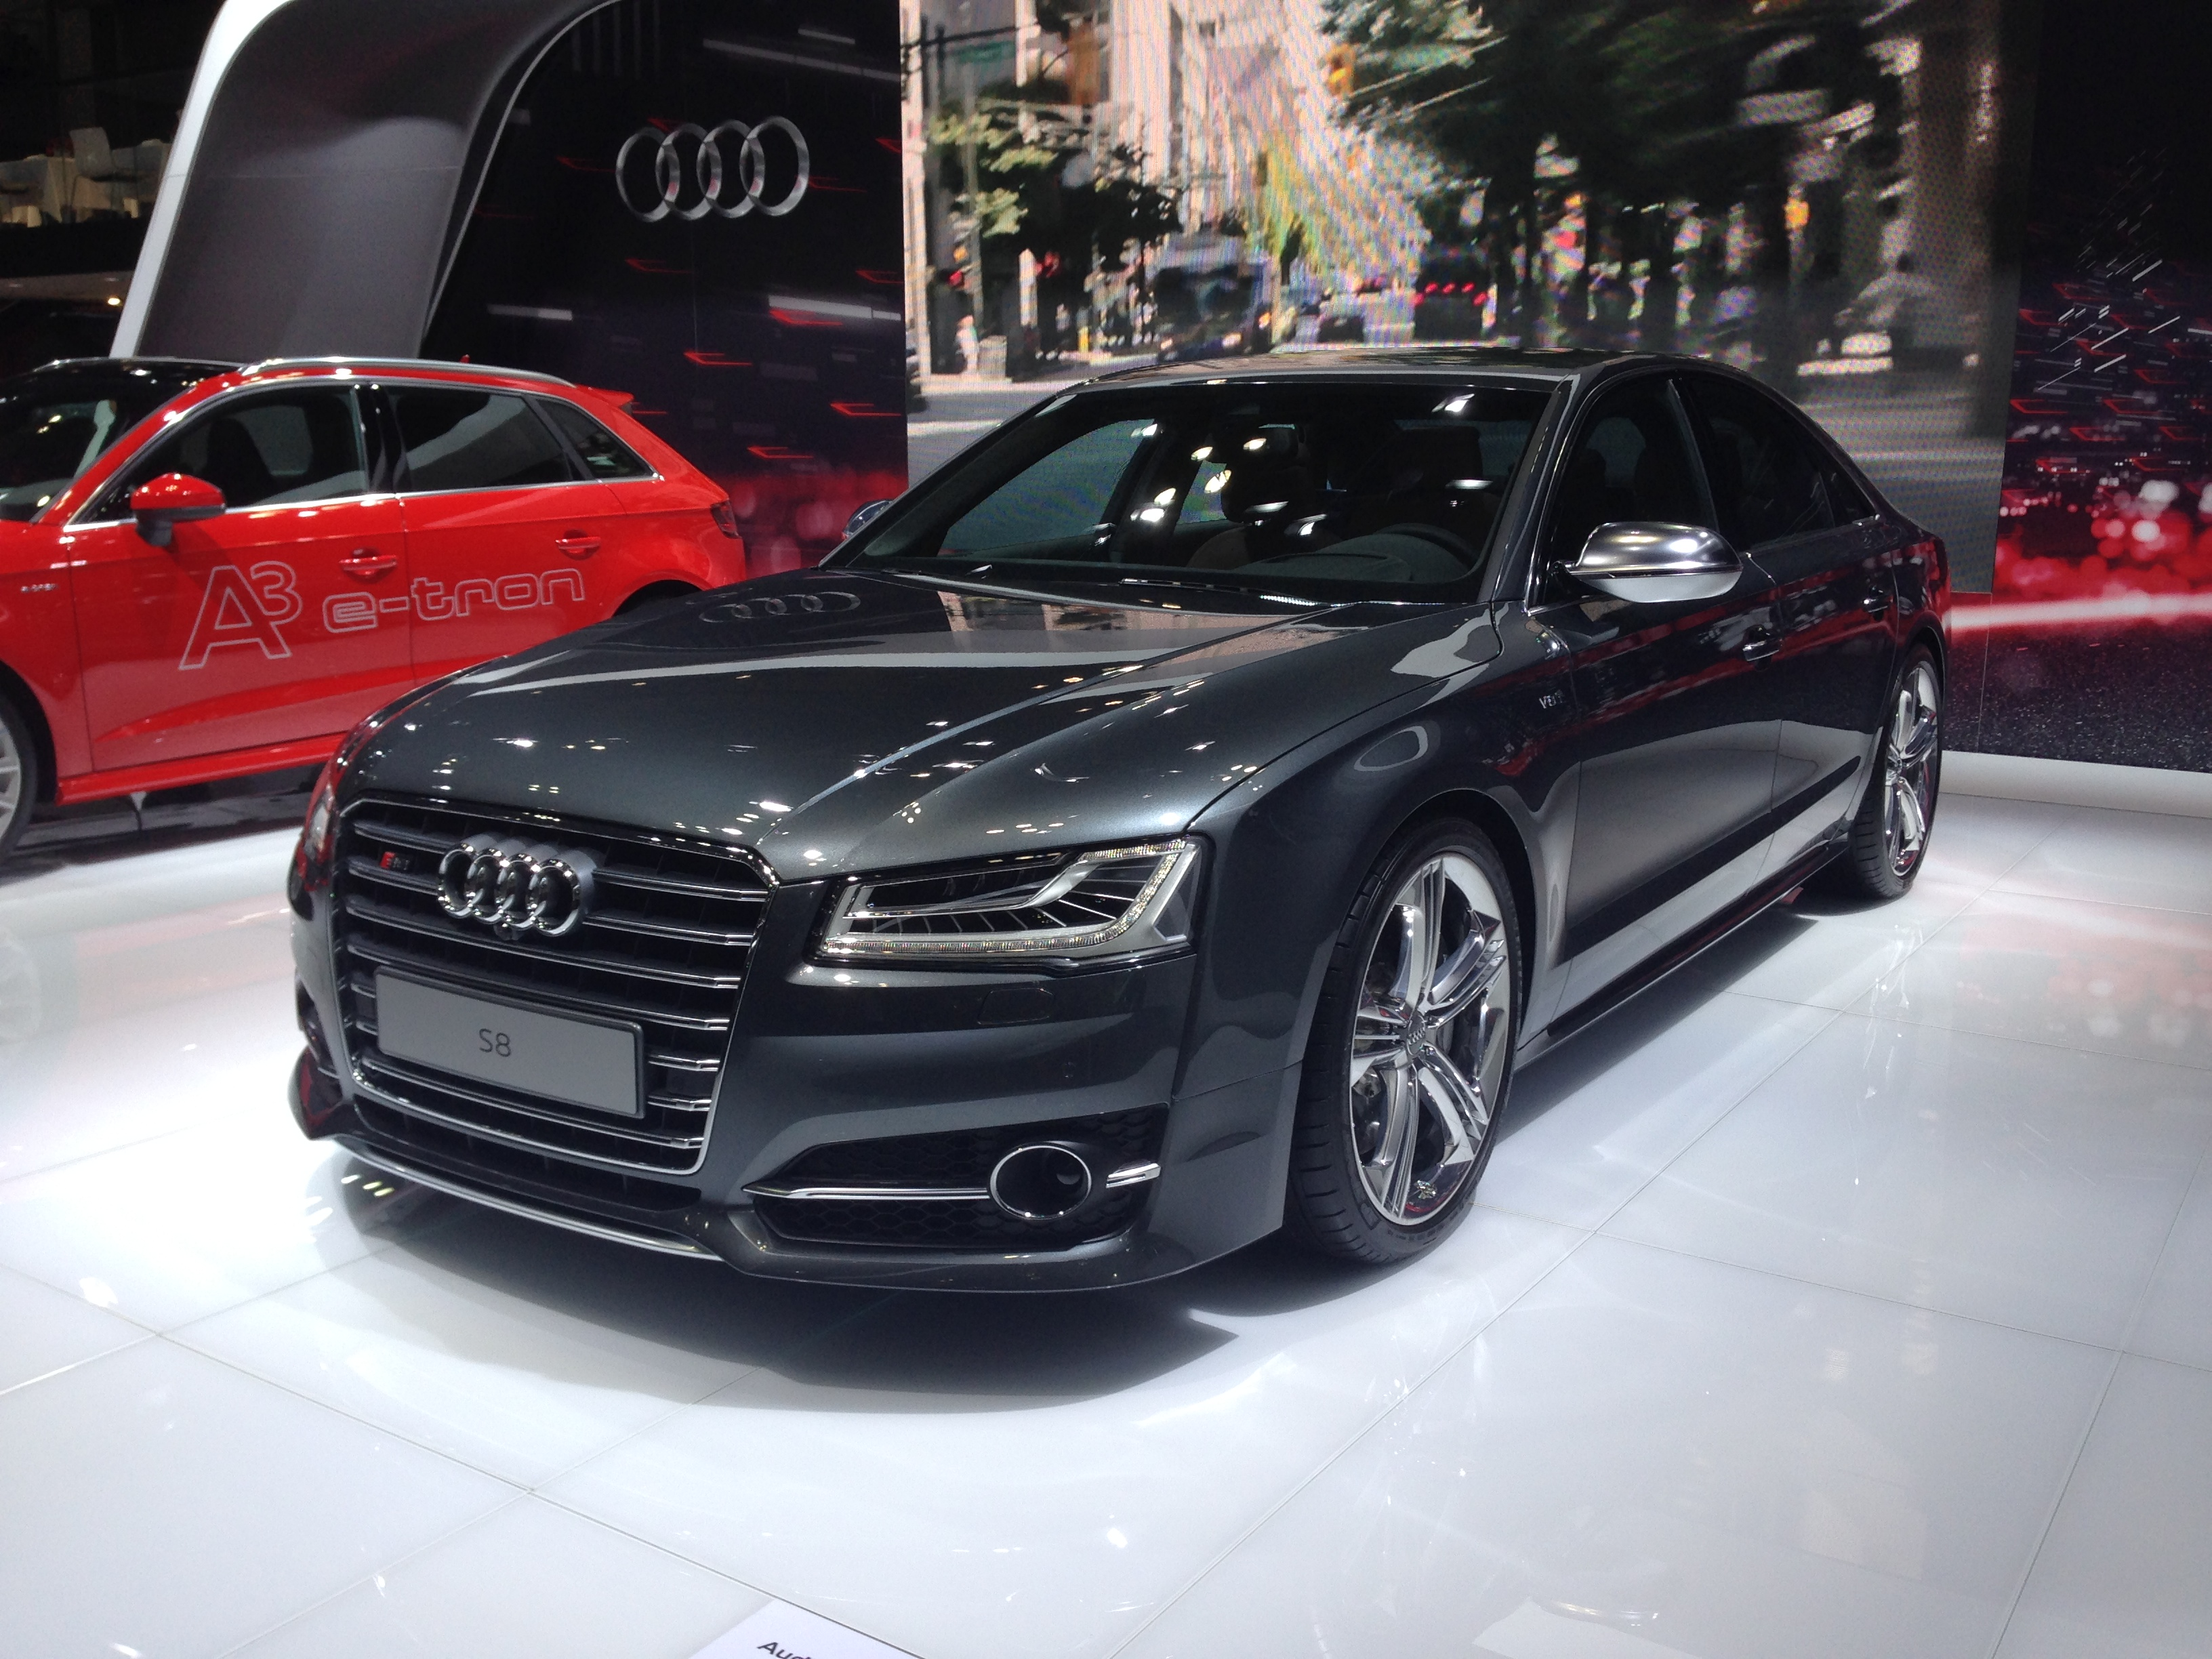 Audi A8 2018 >> File:Audi S8 - Tokyo Motor Show 2013.jpg - Wikimedia Commons